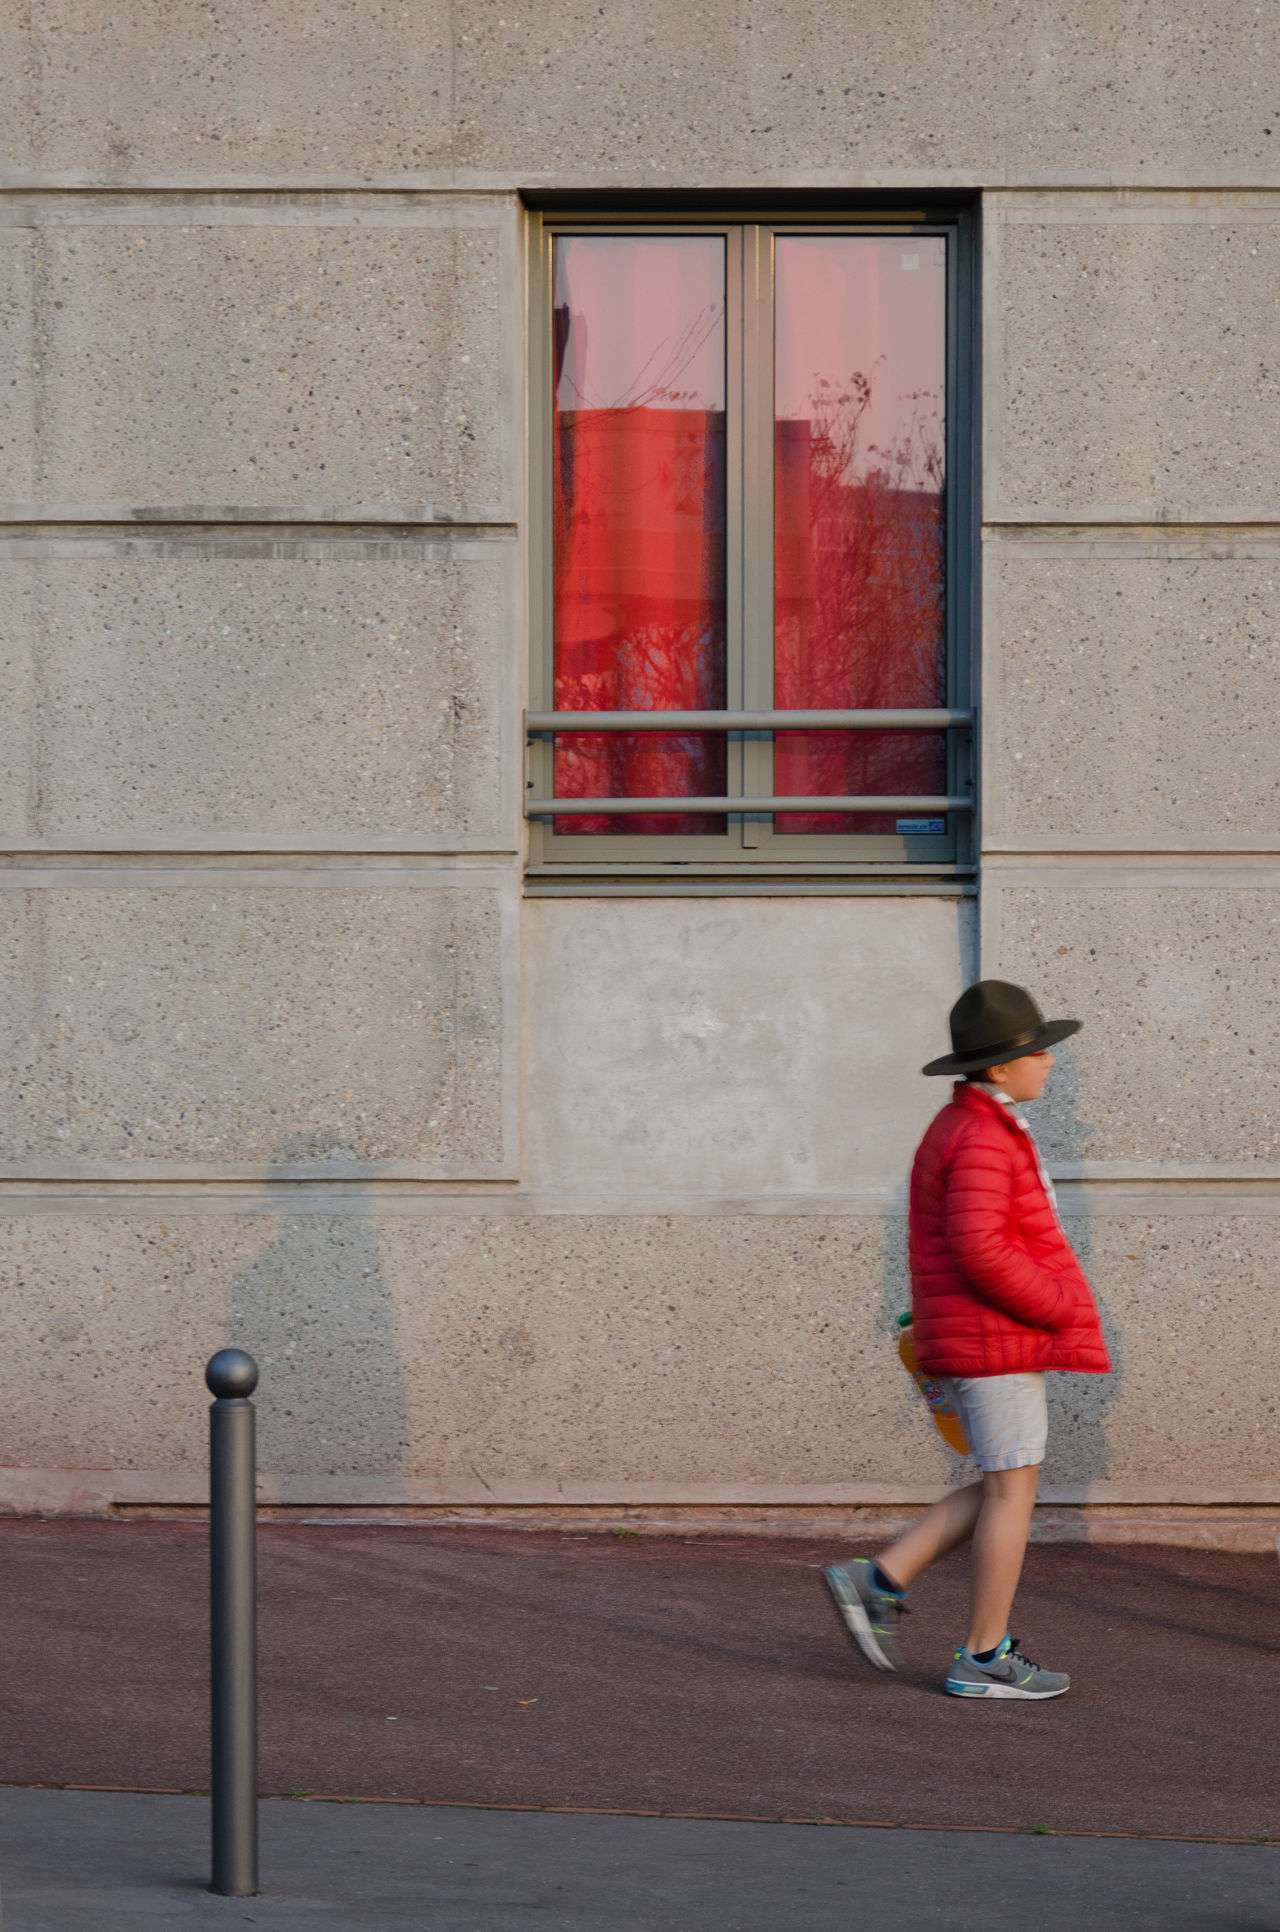 Scout camouflaged Boy Building Exterior Child Childhood City City Life Color Hat One Person Pavement Red Scout Scouting Street Town Uniform Walking Window